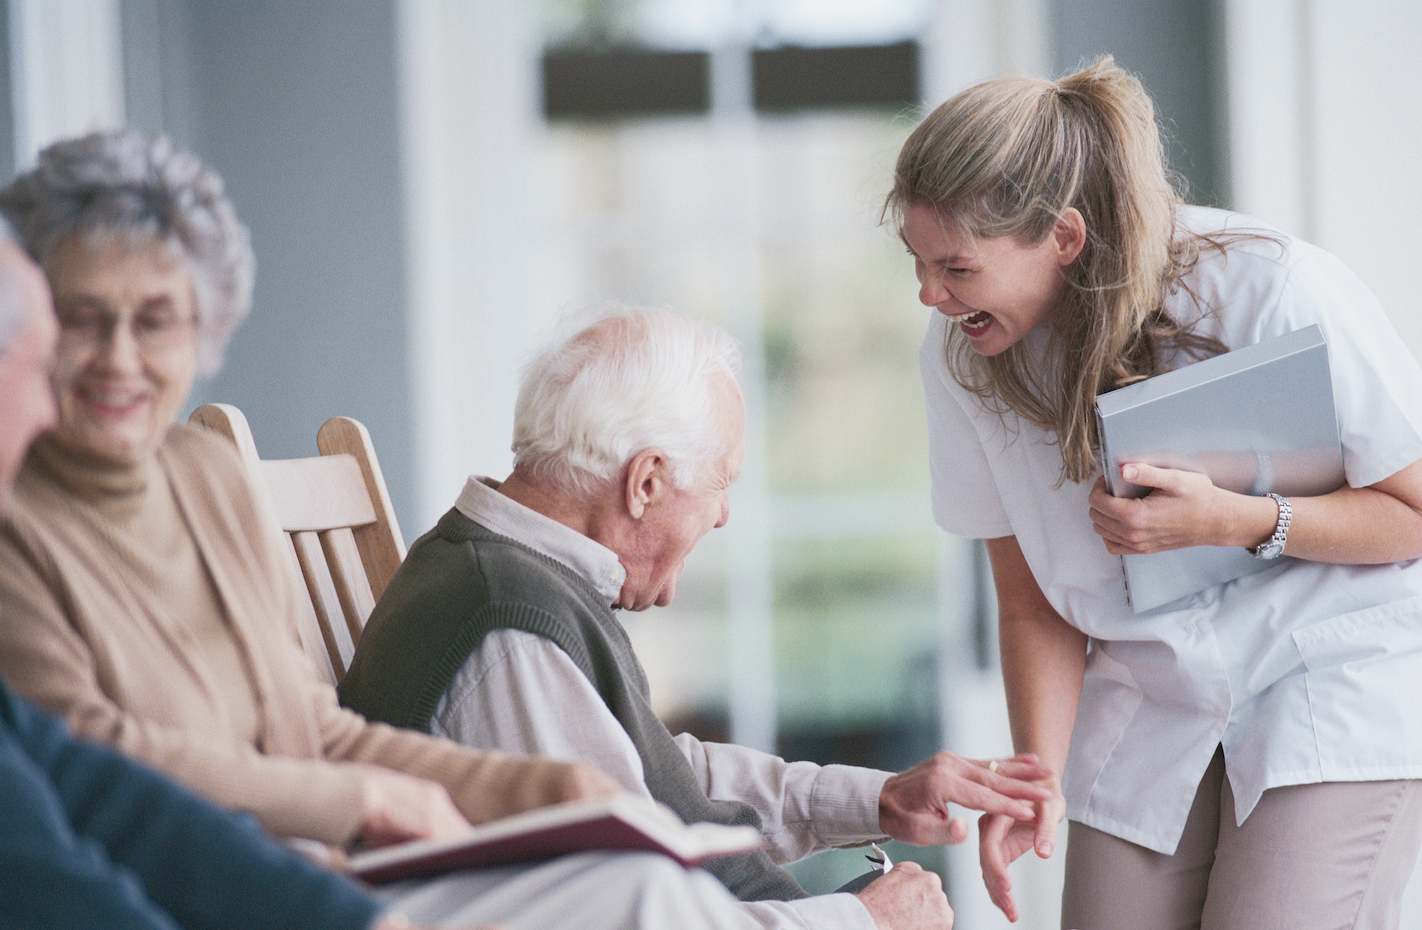 Independent Living, Assisted Living, & Long-Term Care – What's the Difference?